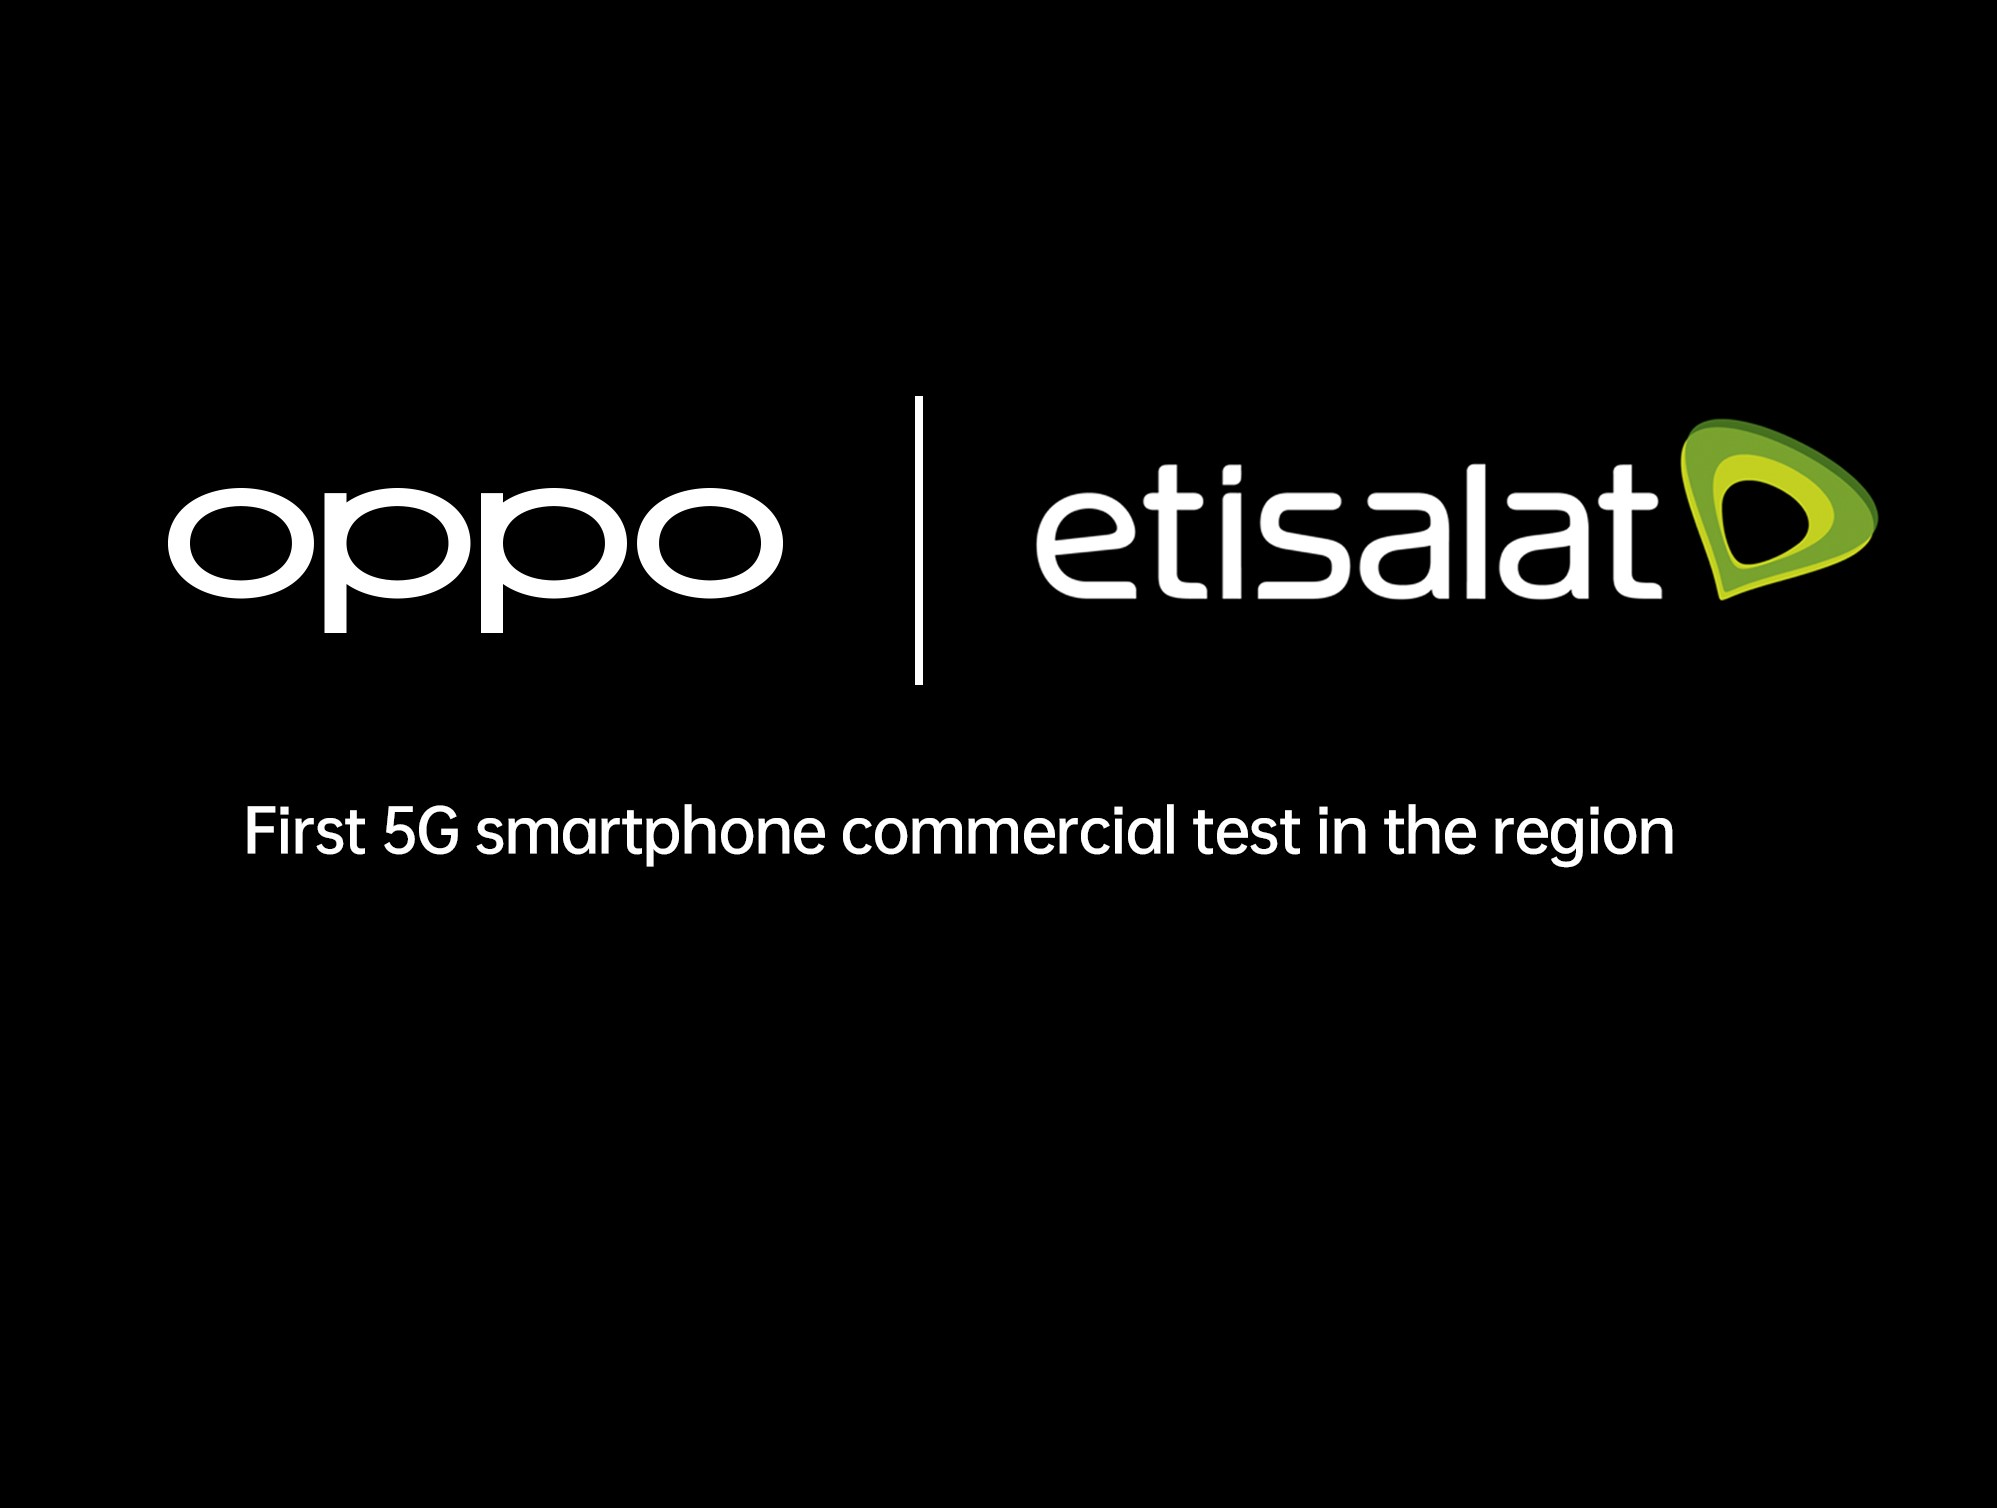 OPPO Collaborates With Etisalat For The First 5G Smartphone Test In The Region